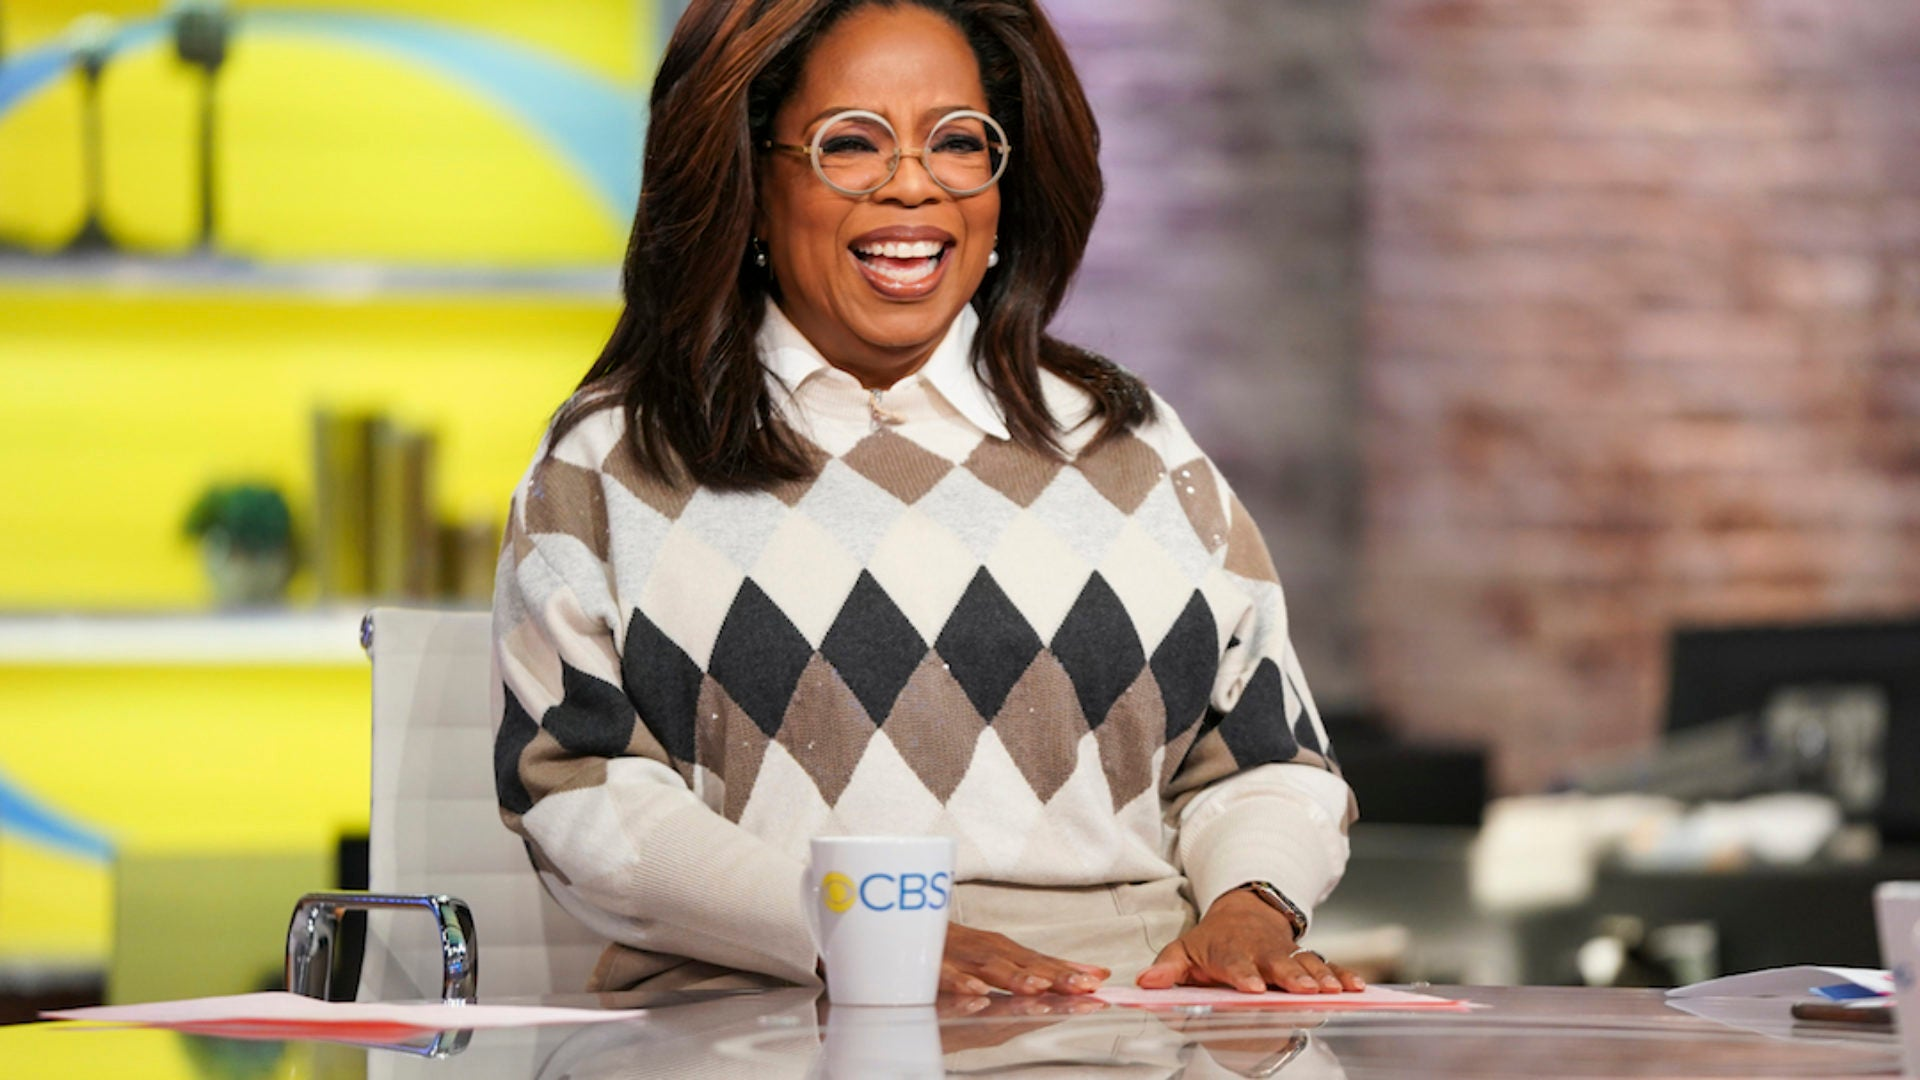 Oprah Winfrey's 2020 Wellness Tour To Feature Michelle Obama, Tracee Ellis Ross & More